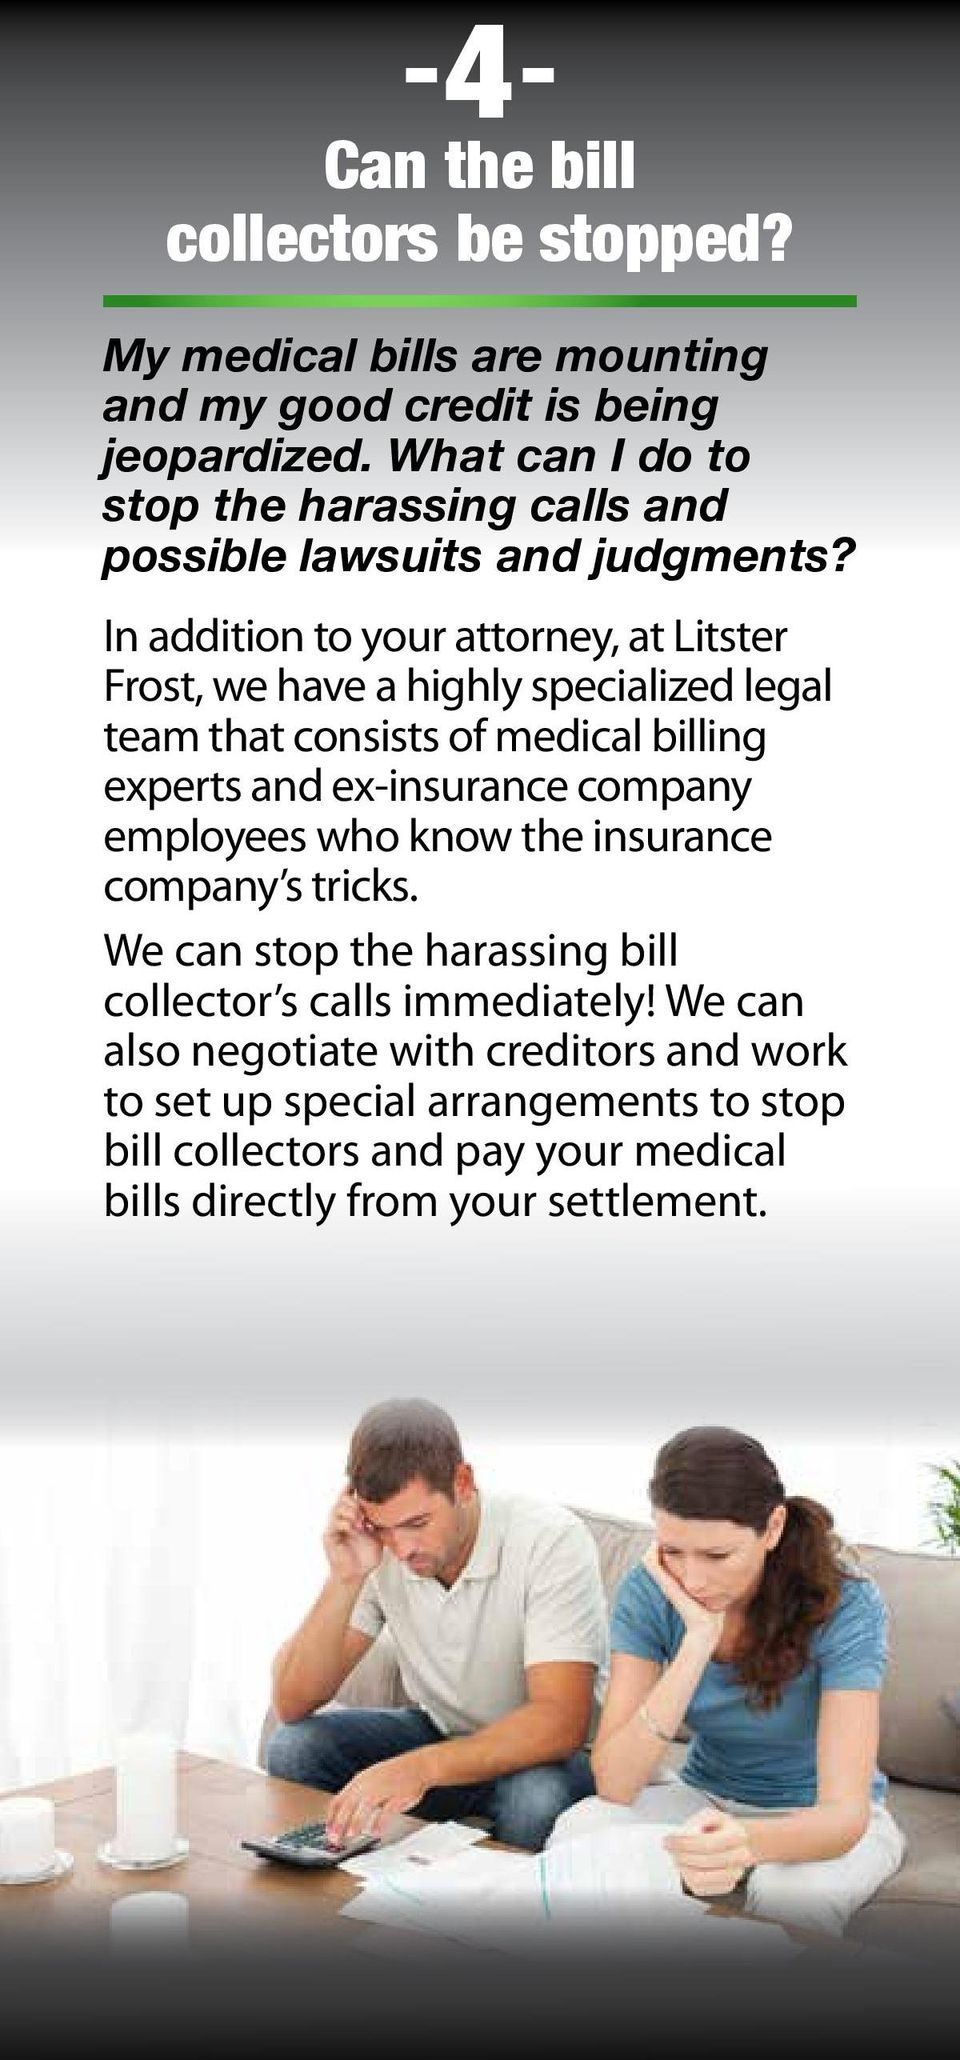 In addition to your attorney, at Litster Frost, we have a highly specialized legal team that consists of medical billing experts and ex-insurance company